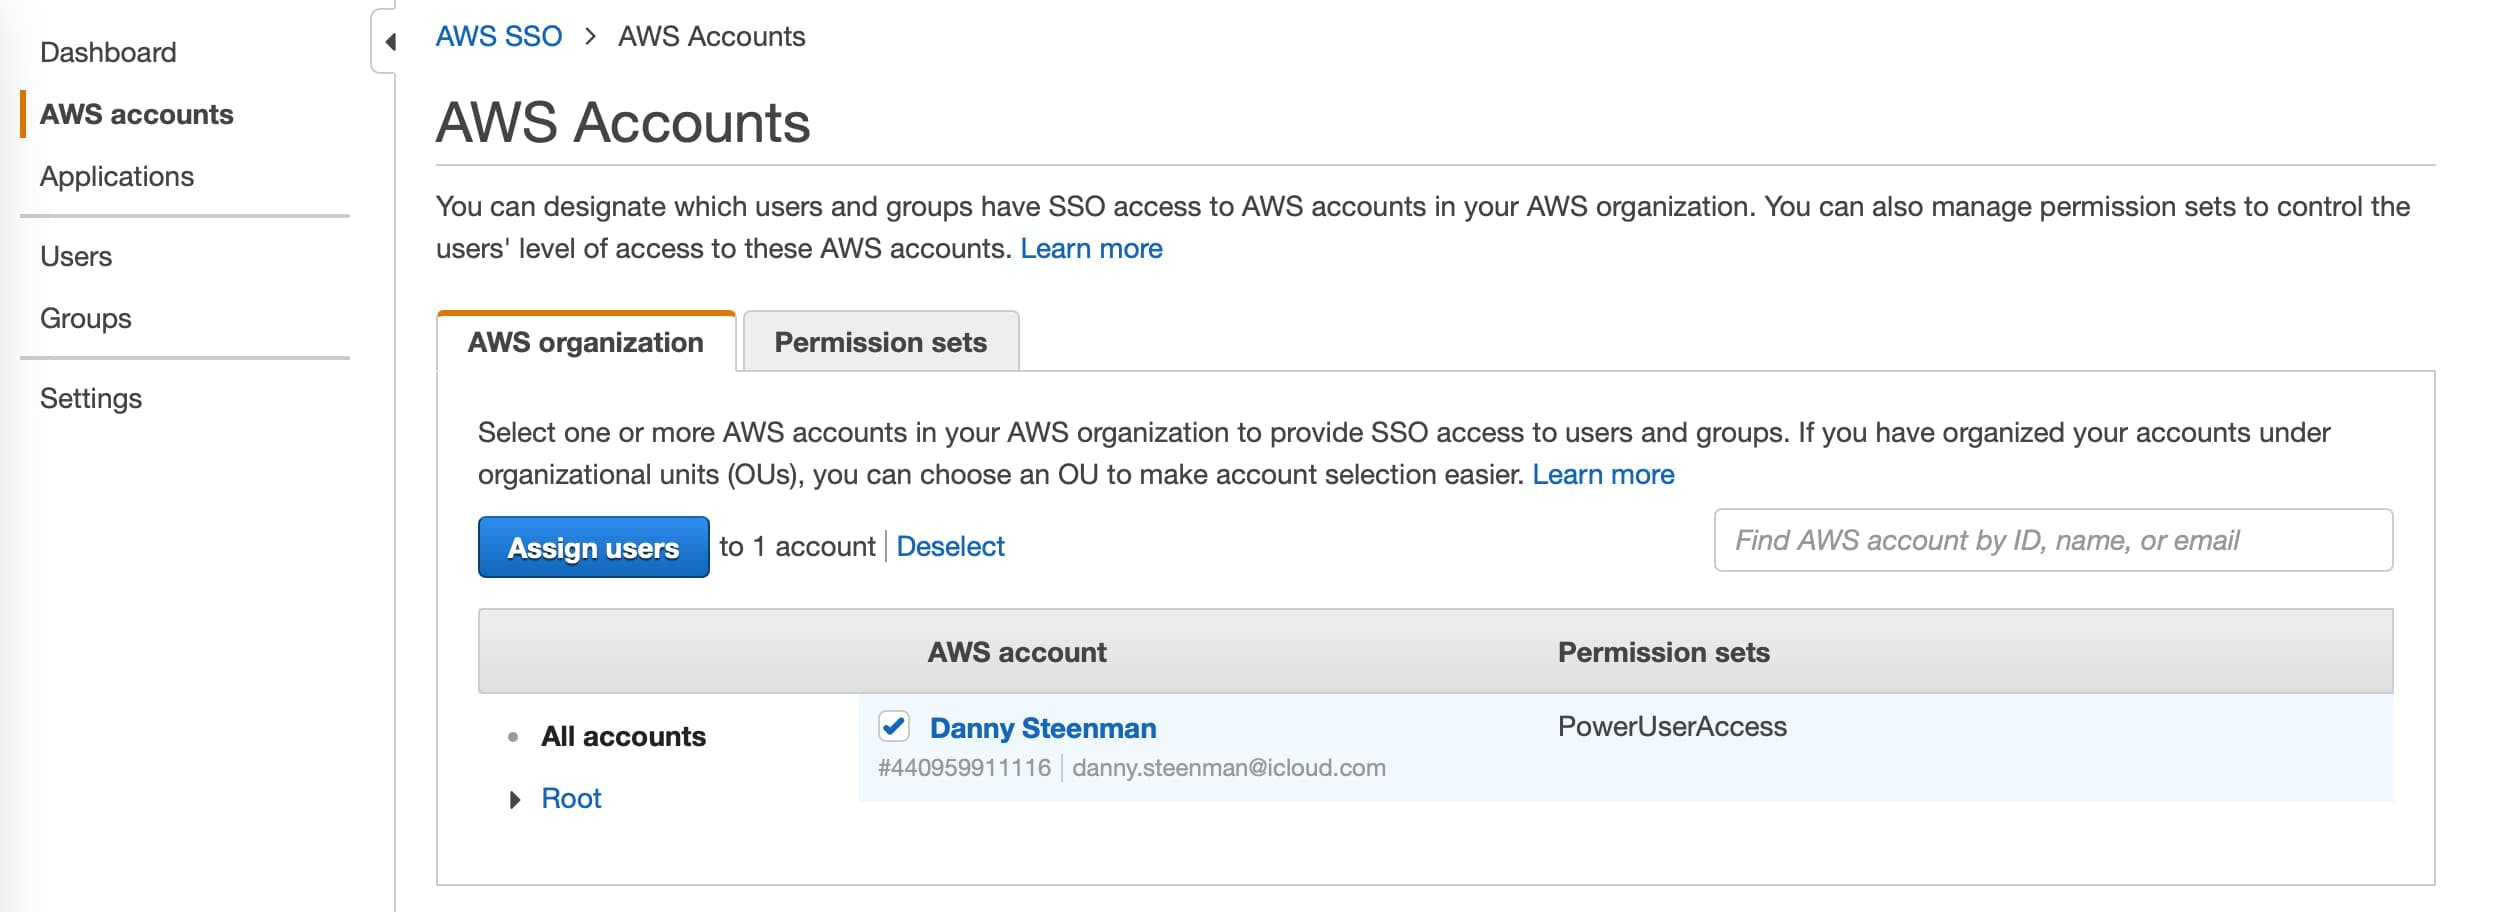 Give AWS SSO user access on your AWS account through permission sets